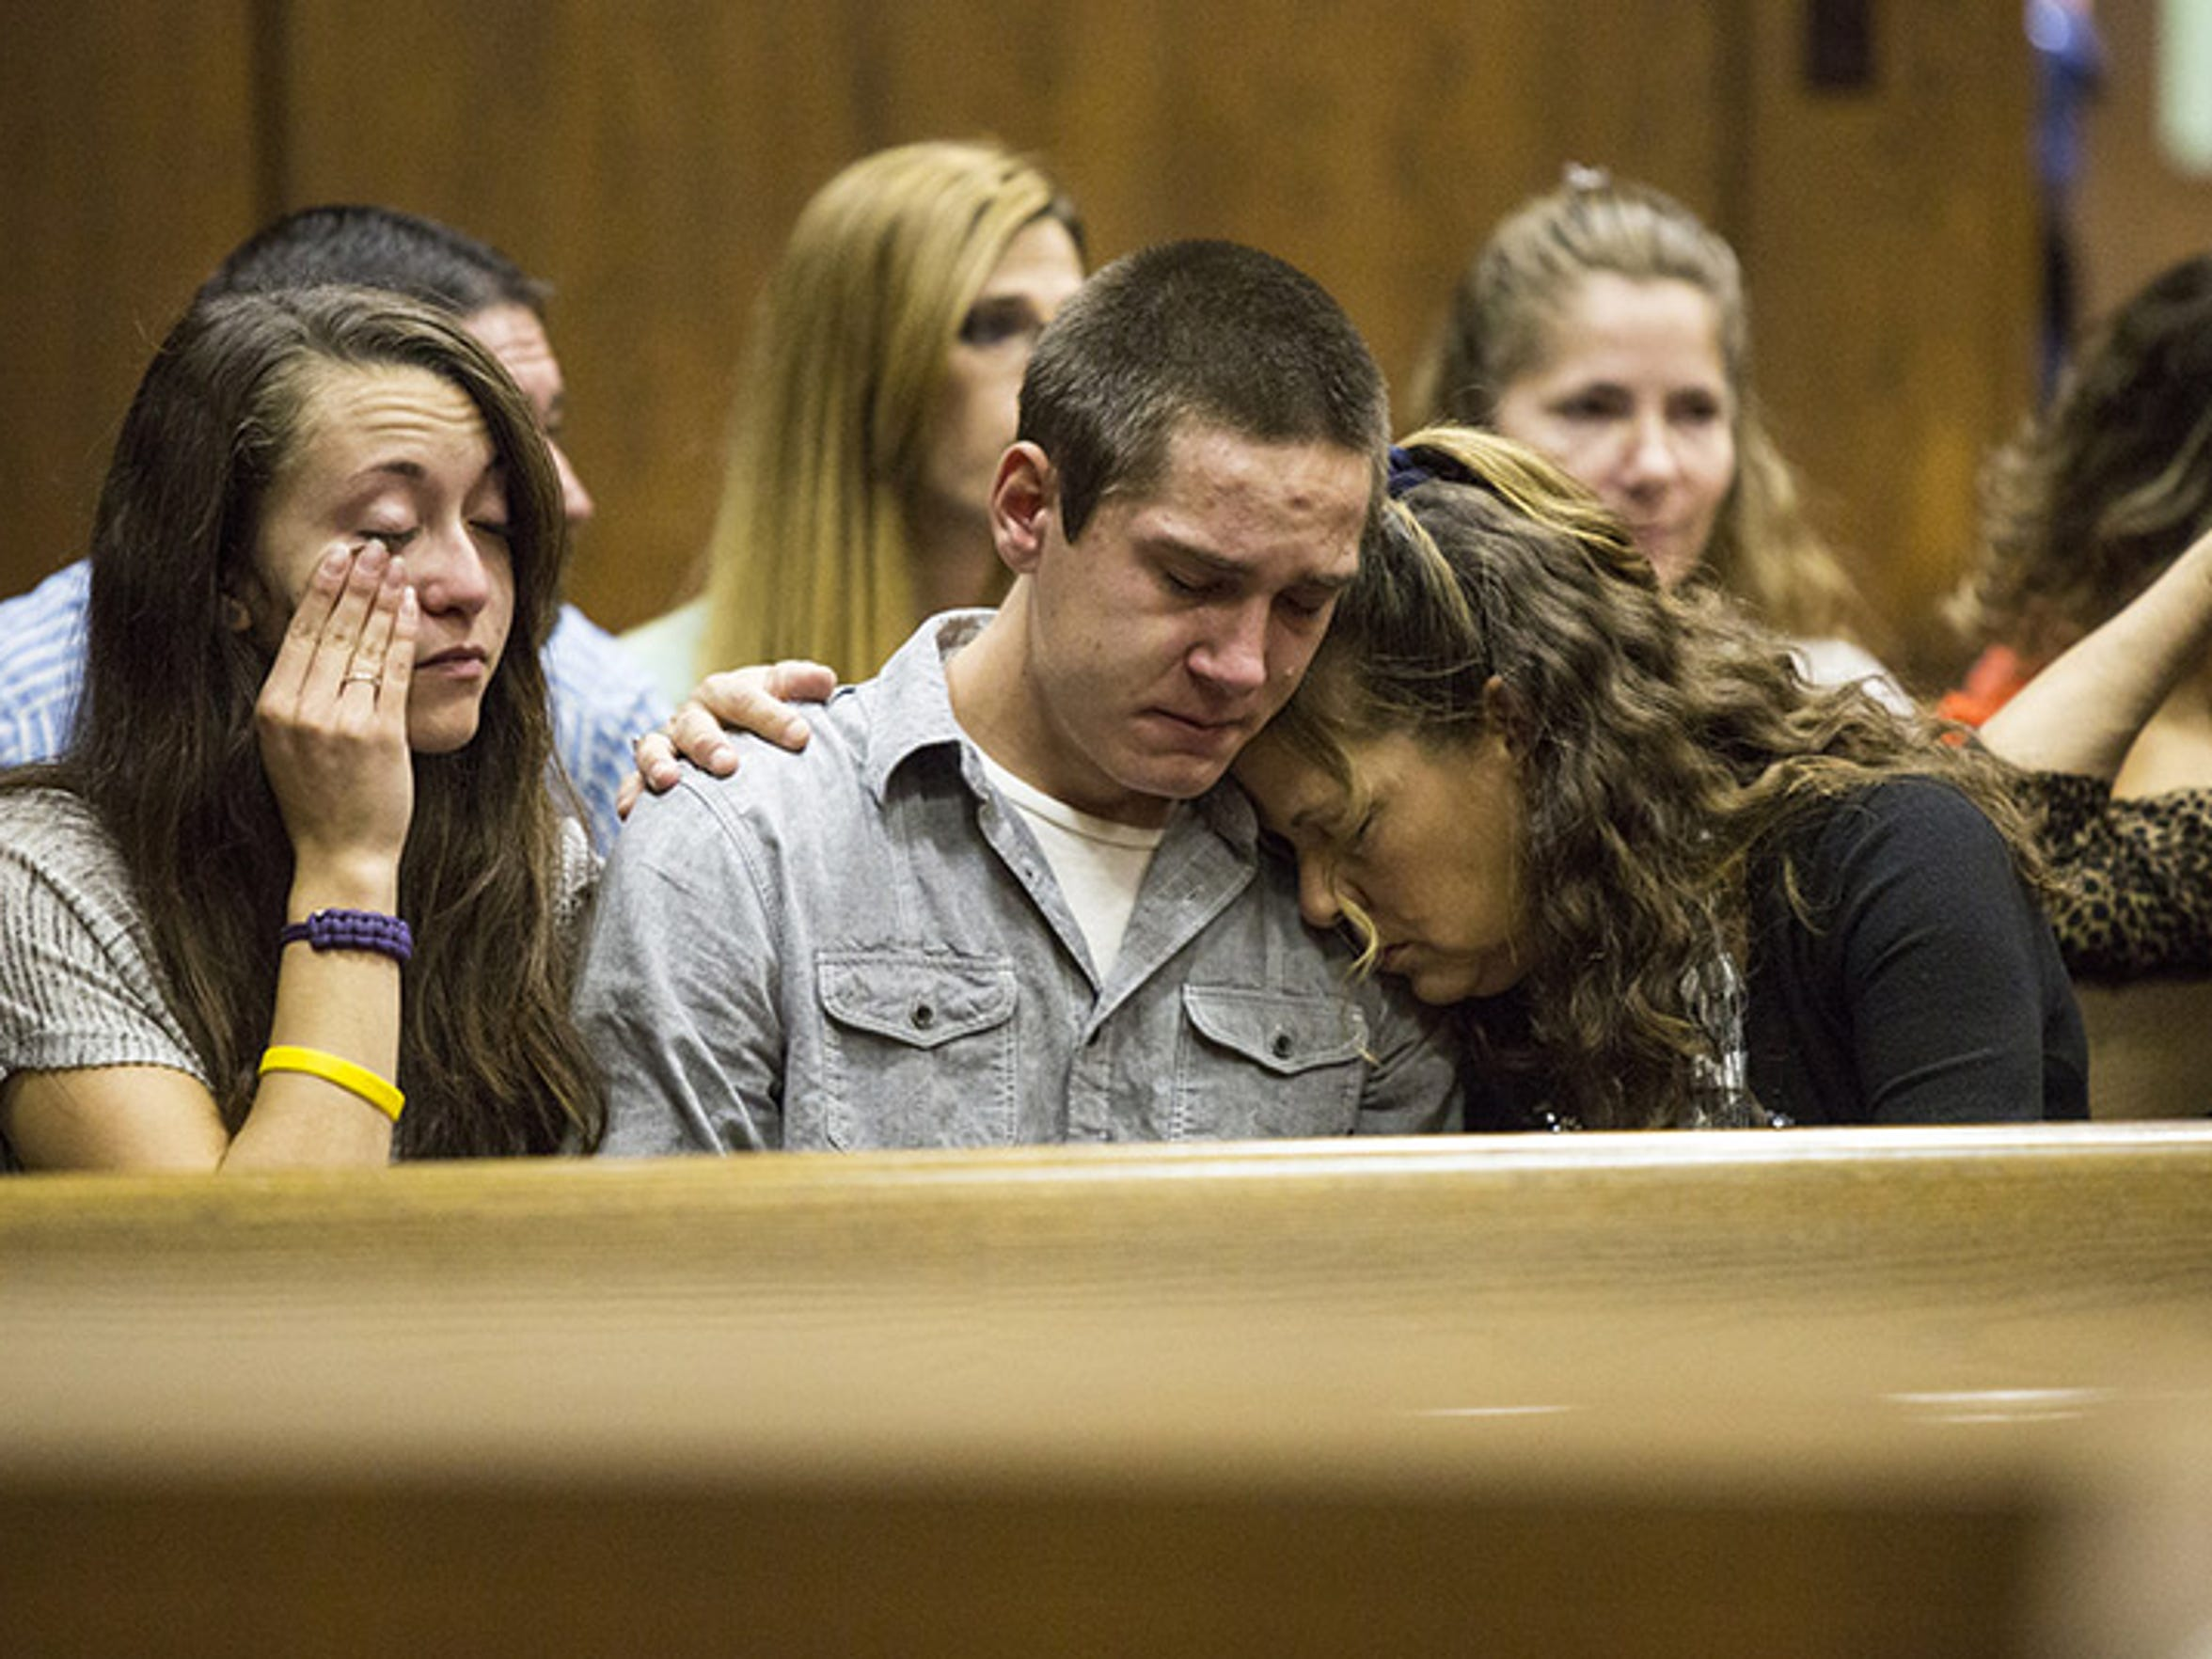 Autumn Arseneau, 18, Zak Roll, 18, and his mother Kellie Roll, 51, of Germfask, listen to testimony about the murders of Arseneau's uncle Jody Hutchinson, 42, and Roll's daughters Carrie Nelson, 31, and Heather Aldrich, 25, during an Oct. 19 court hearing.